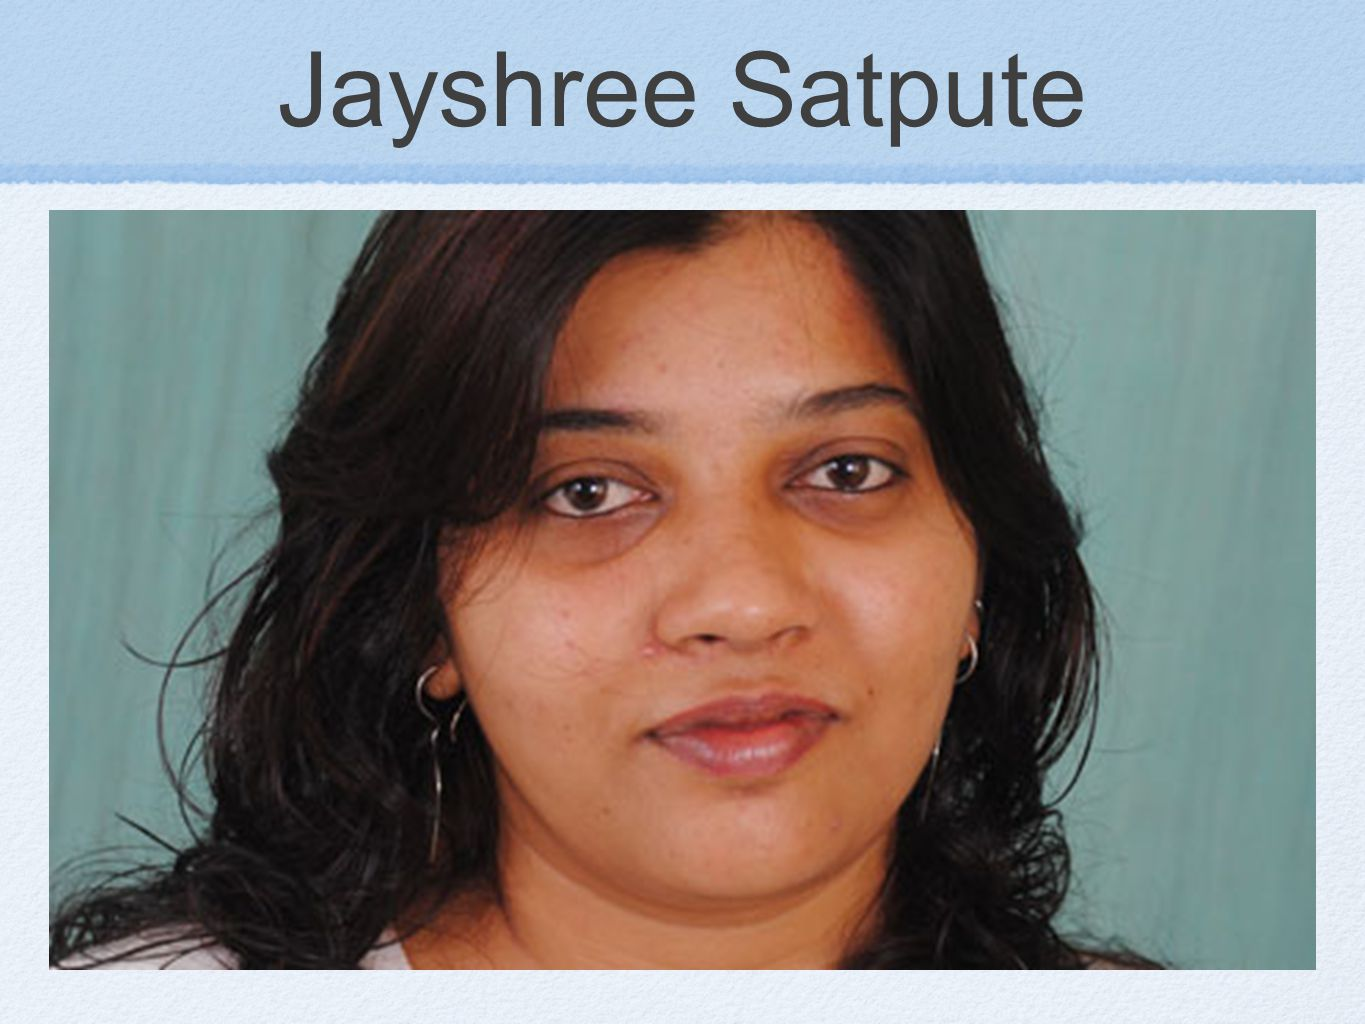 Satpute is an advocator for human rights who is working to help prevent deaths of low-income women in India due to childbirth.